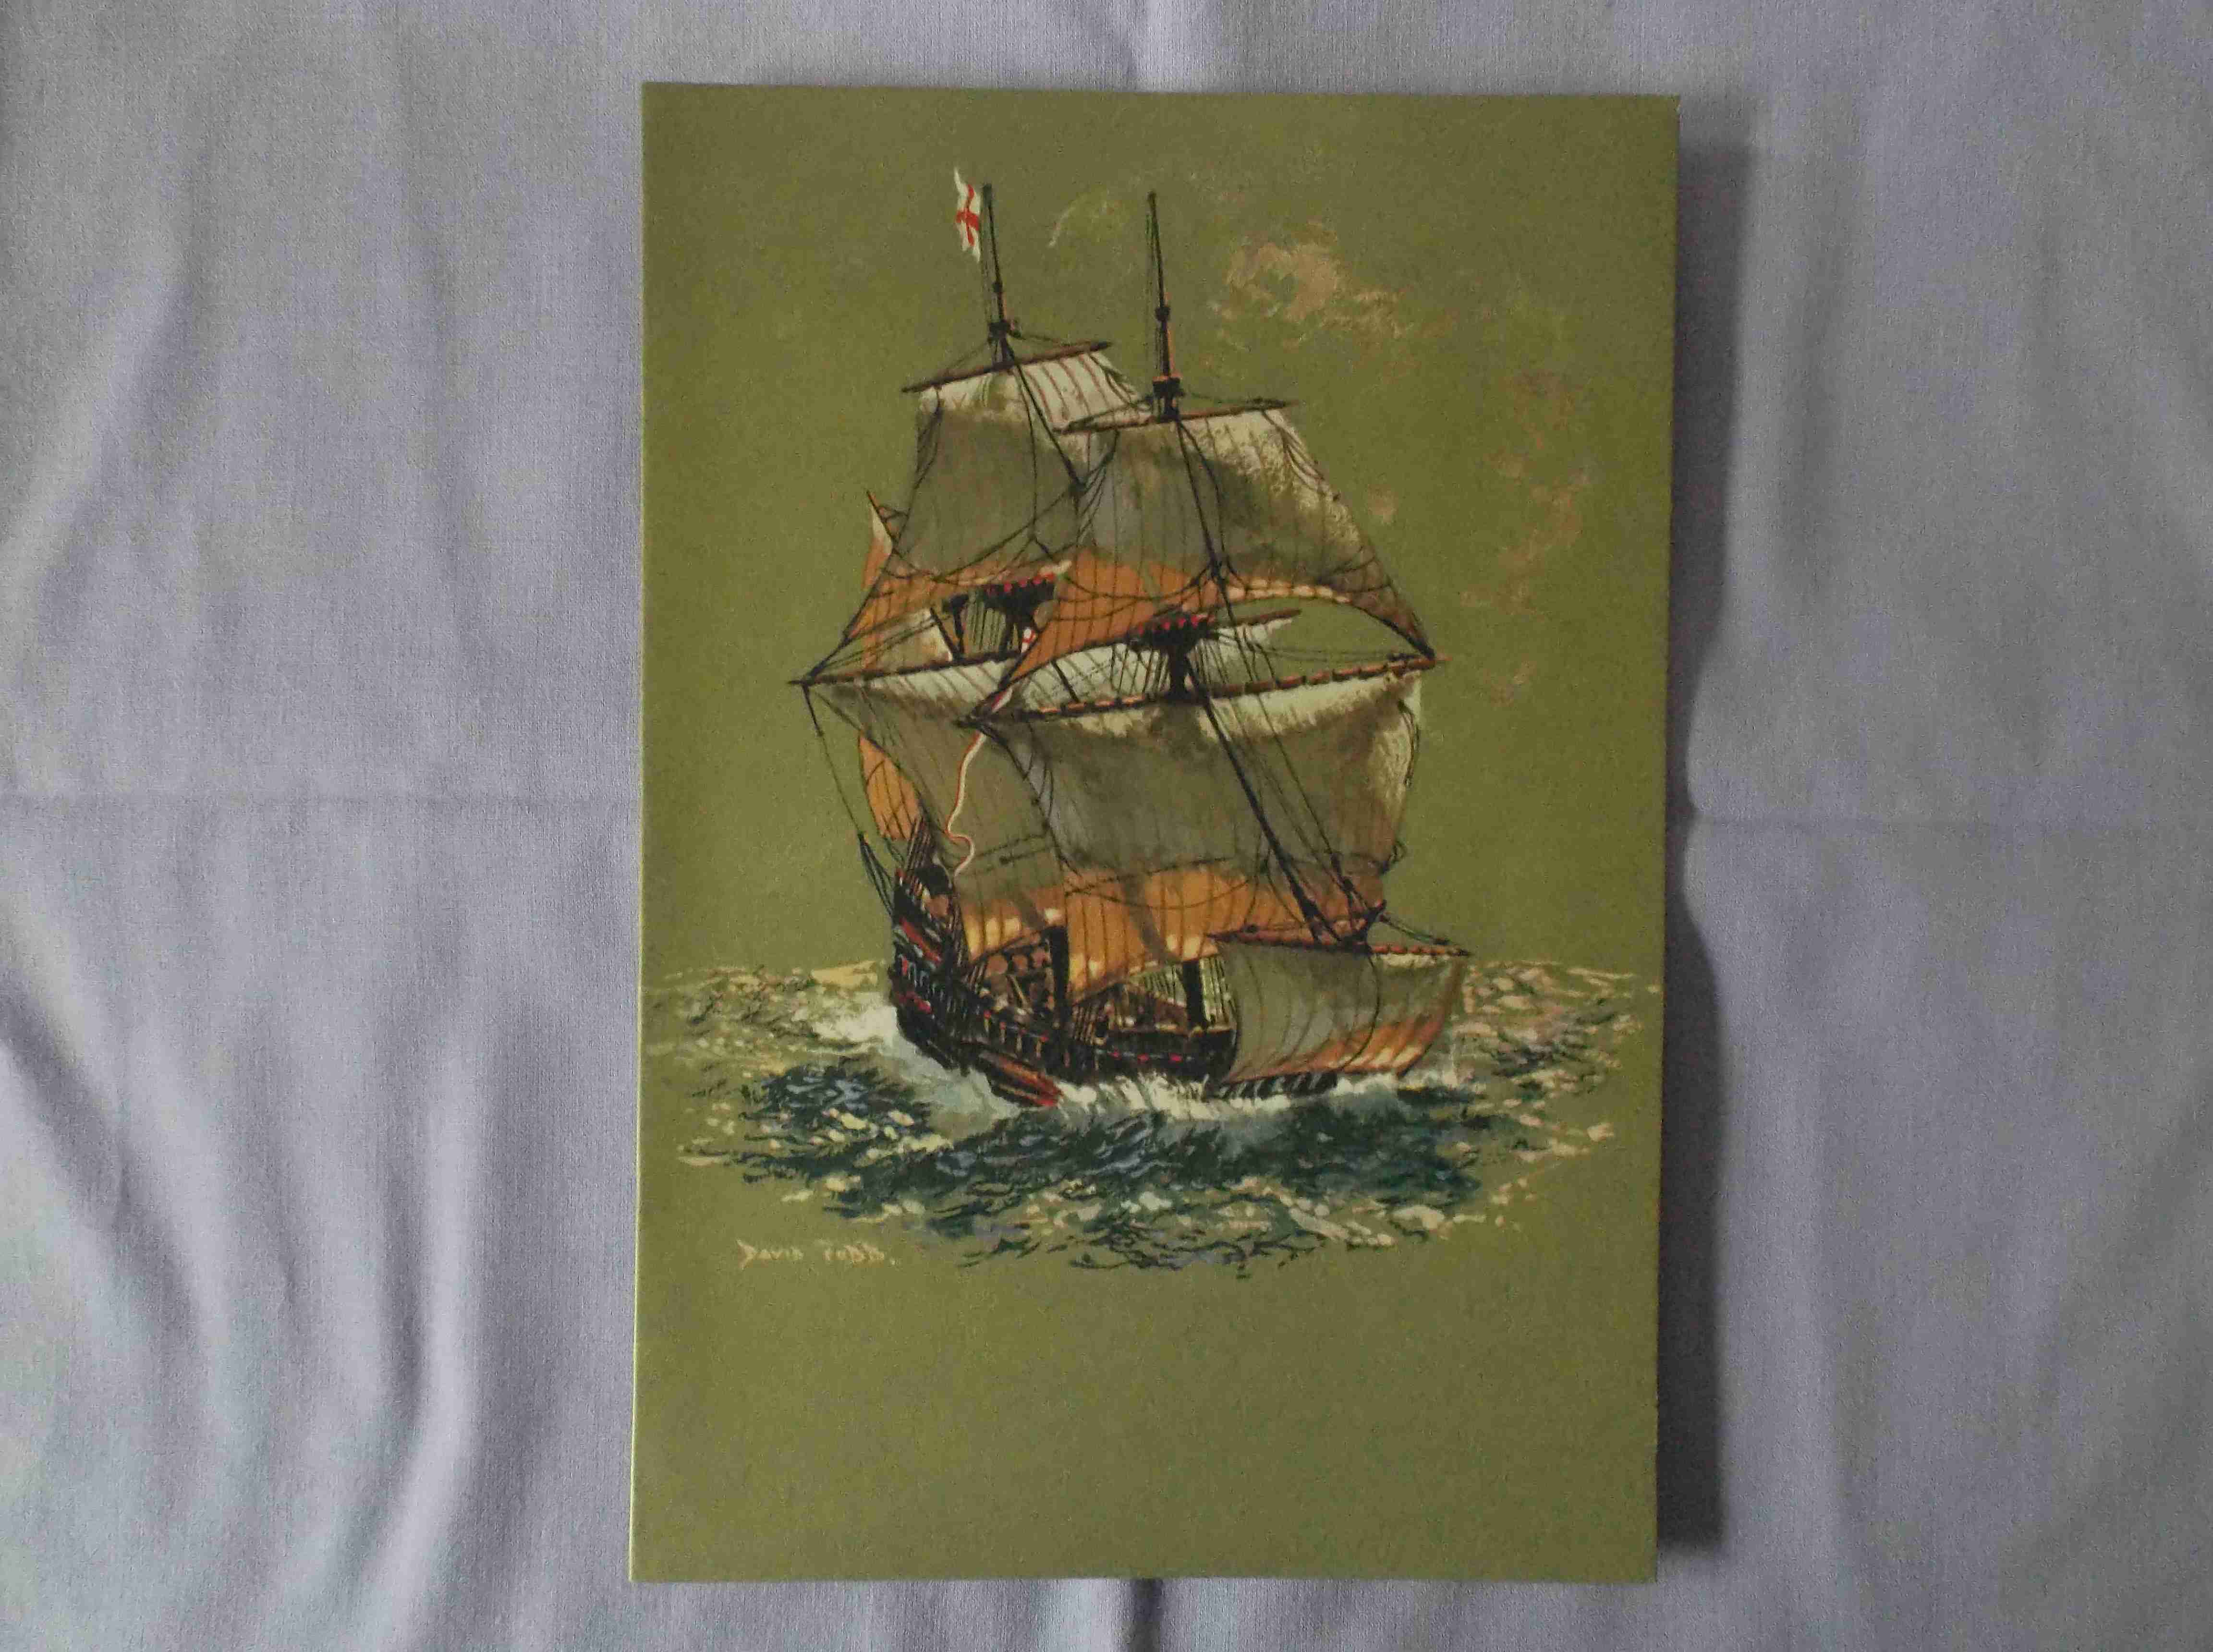 DINNER MENU FOR THE OLD ORIENT LINE VESSEL THE ORIANA DATED AUGUST 1969